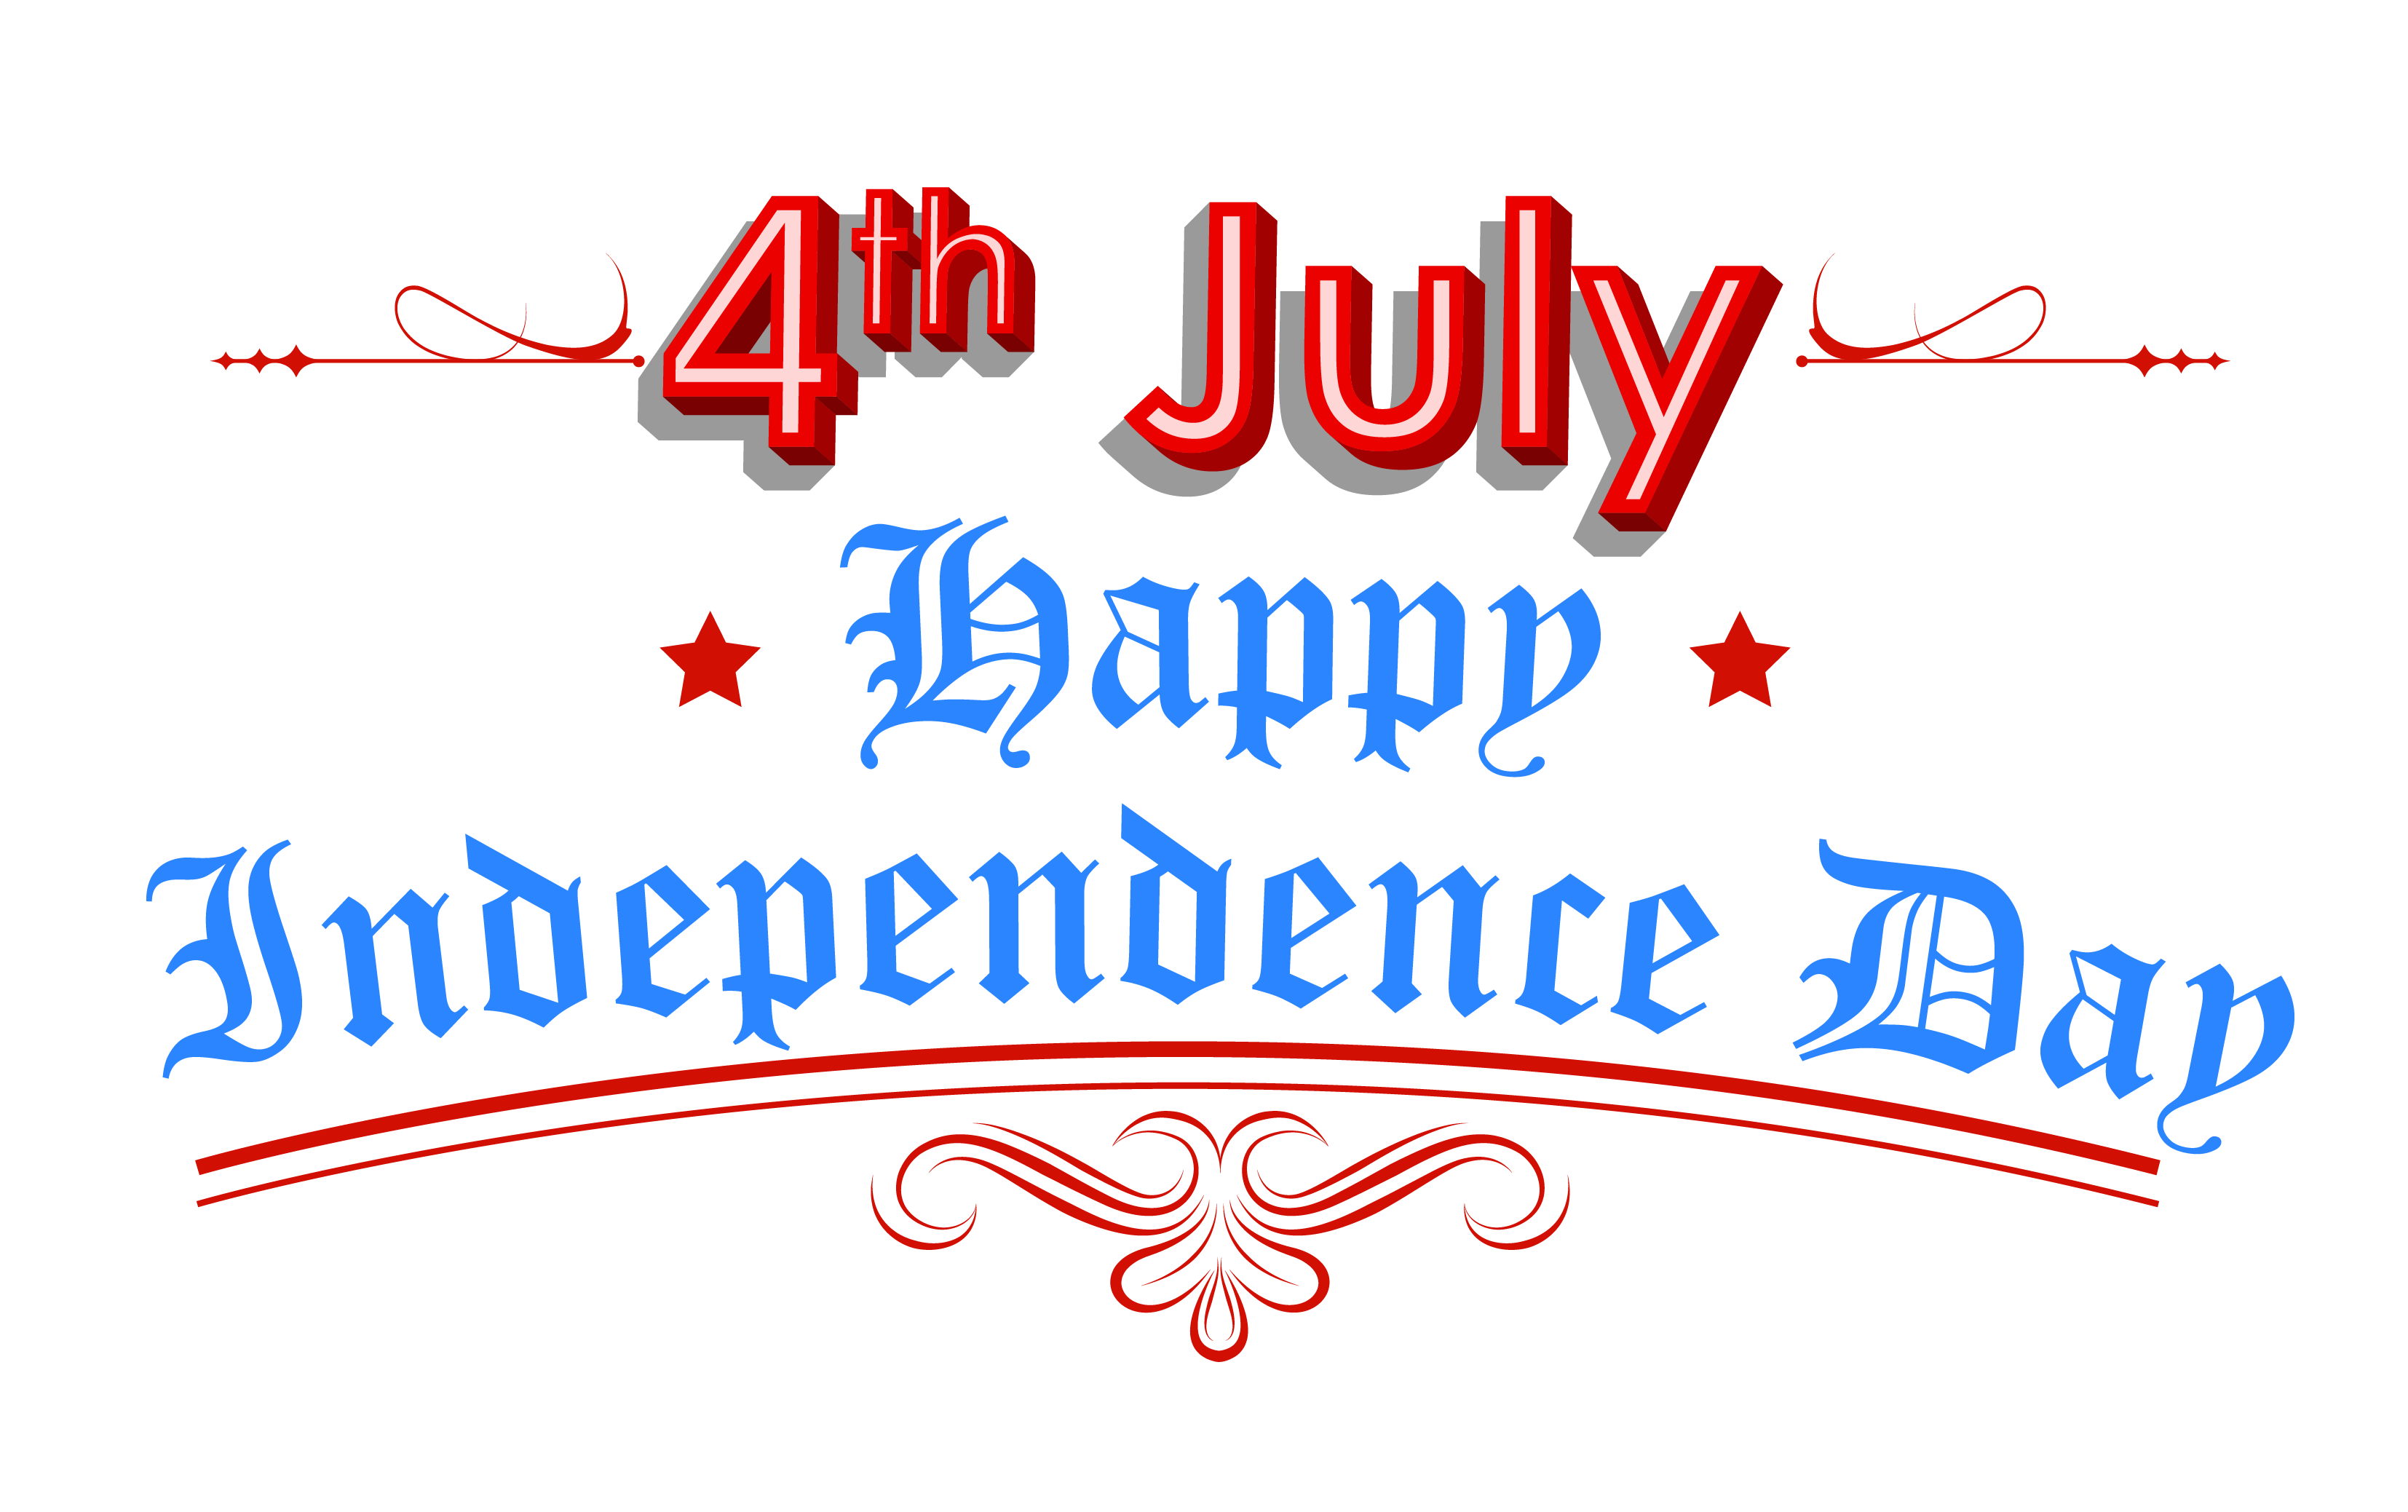 happy independence day 4th july clipart july 4th clip art rh pinterest com independence day clipart black and white independence day clip art animated